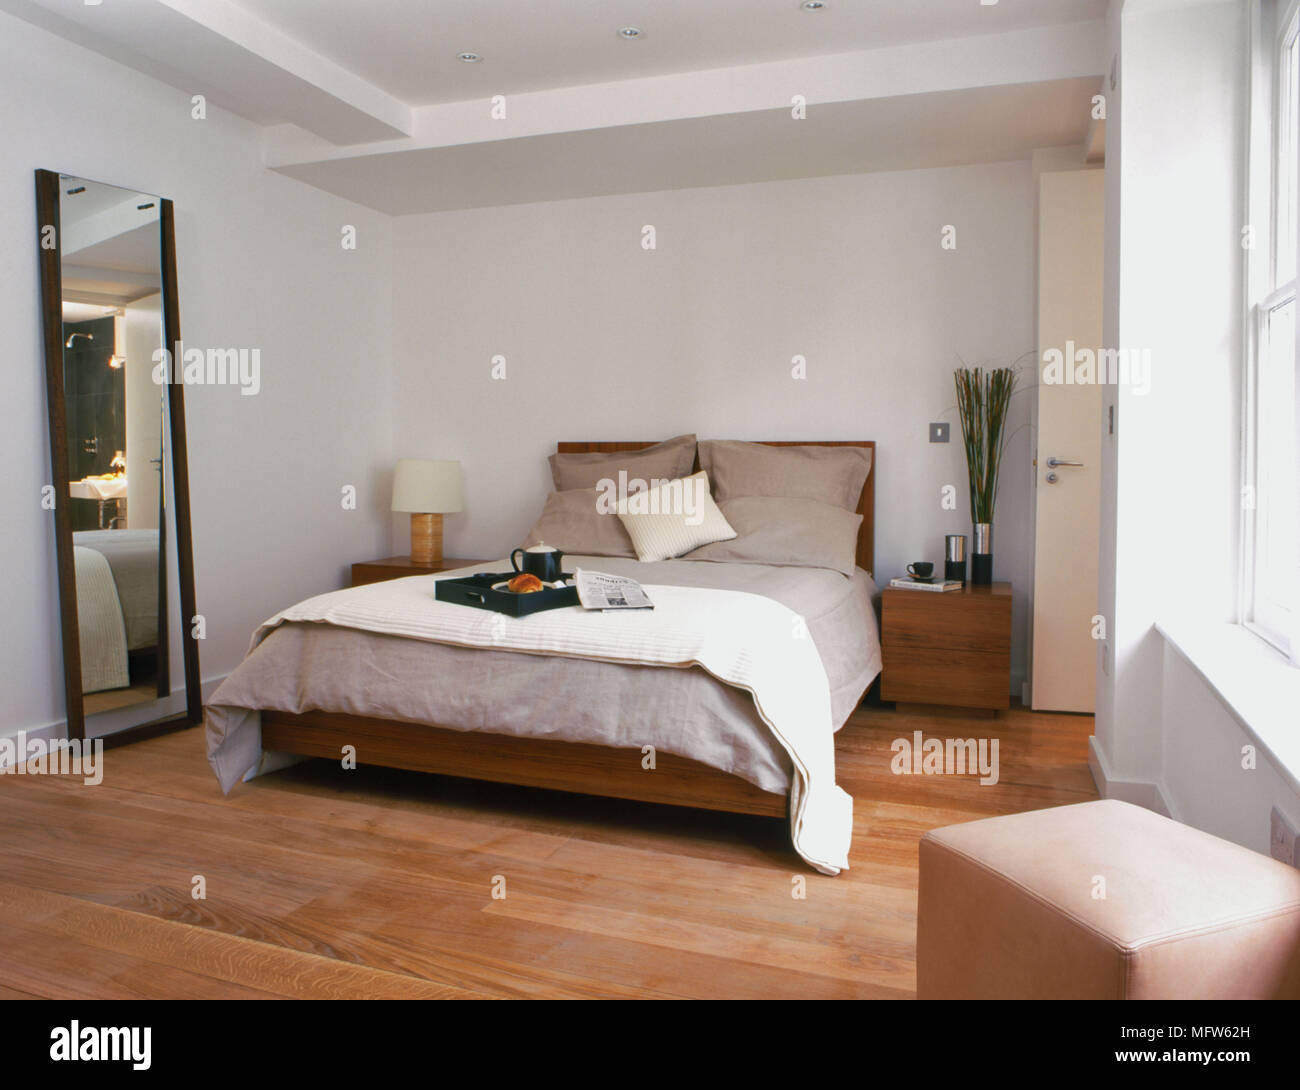 Details Of A Modern Bedroom With A Large Full Length Mirror Next To A Double Bed With Two Wooden Side Tables And A Square Seat In The Foreground Stock Photo Alamy